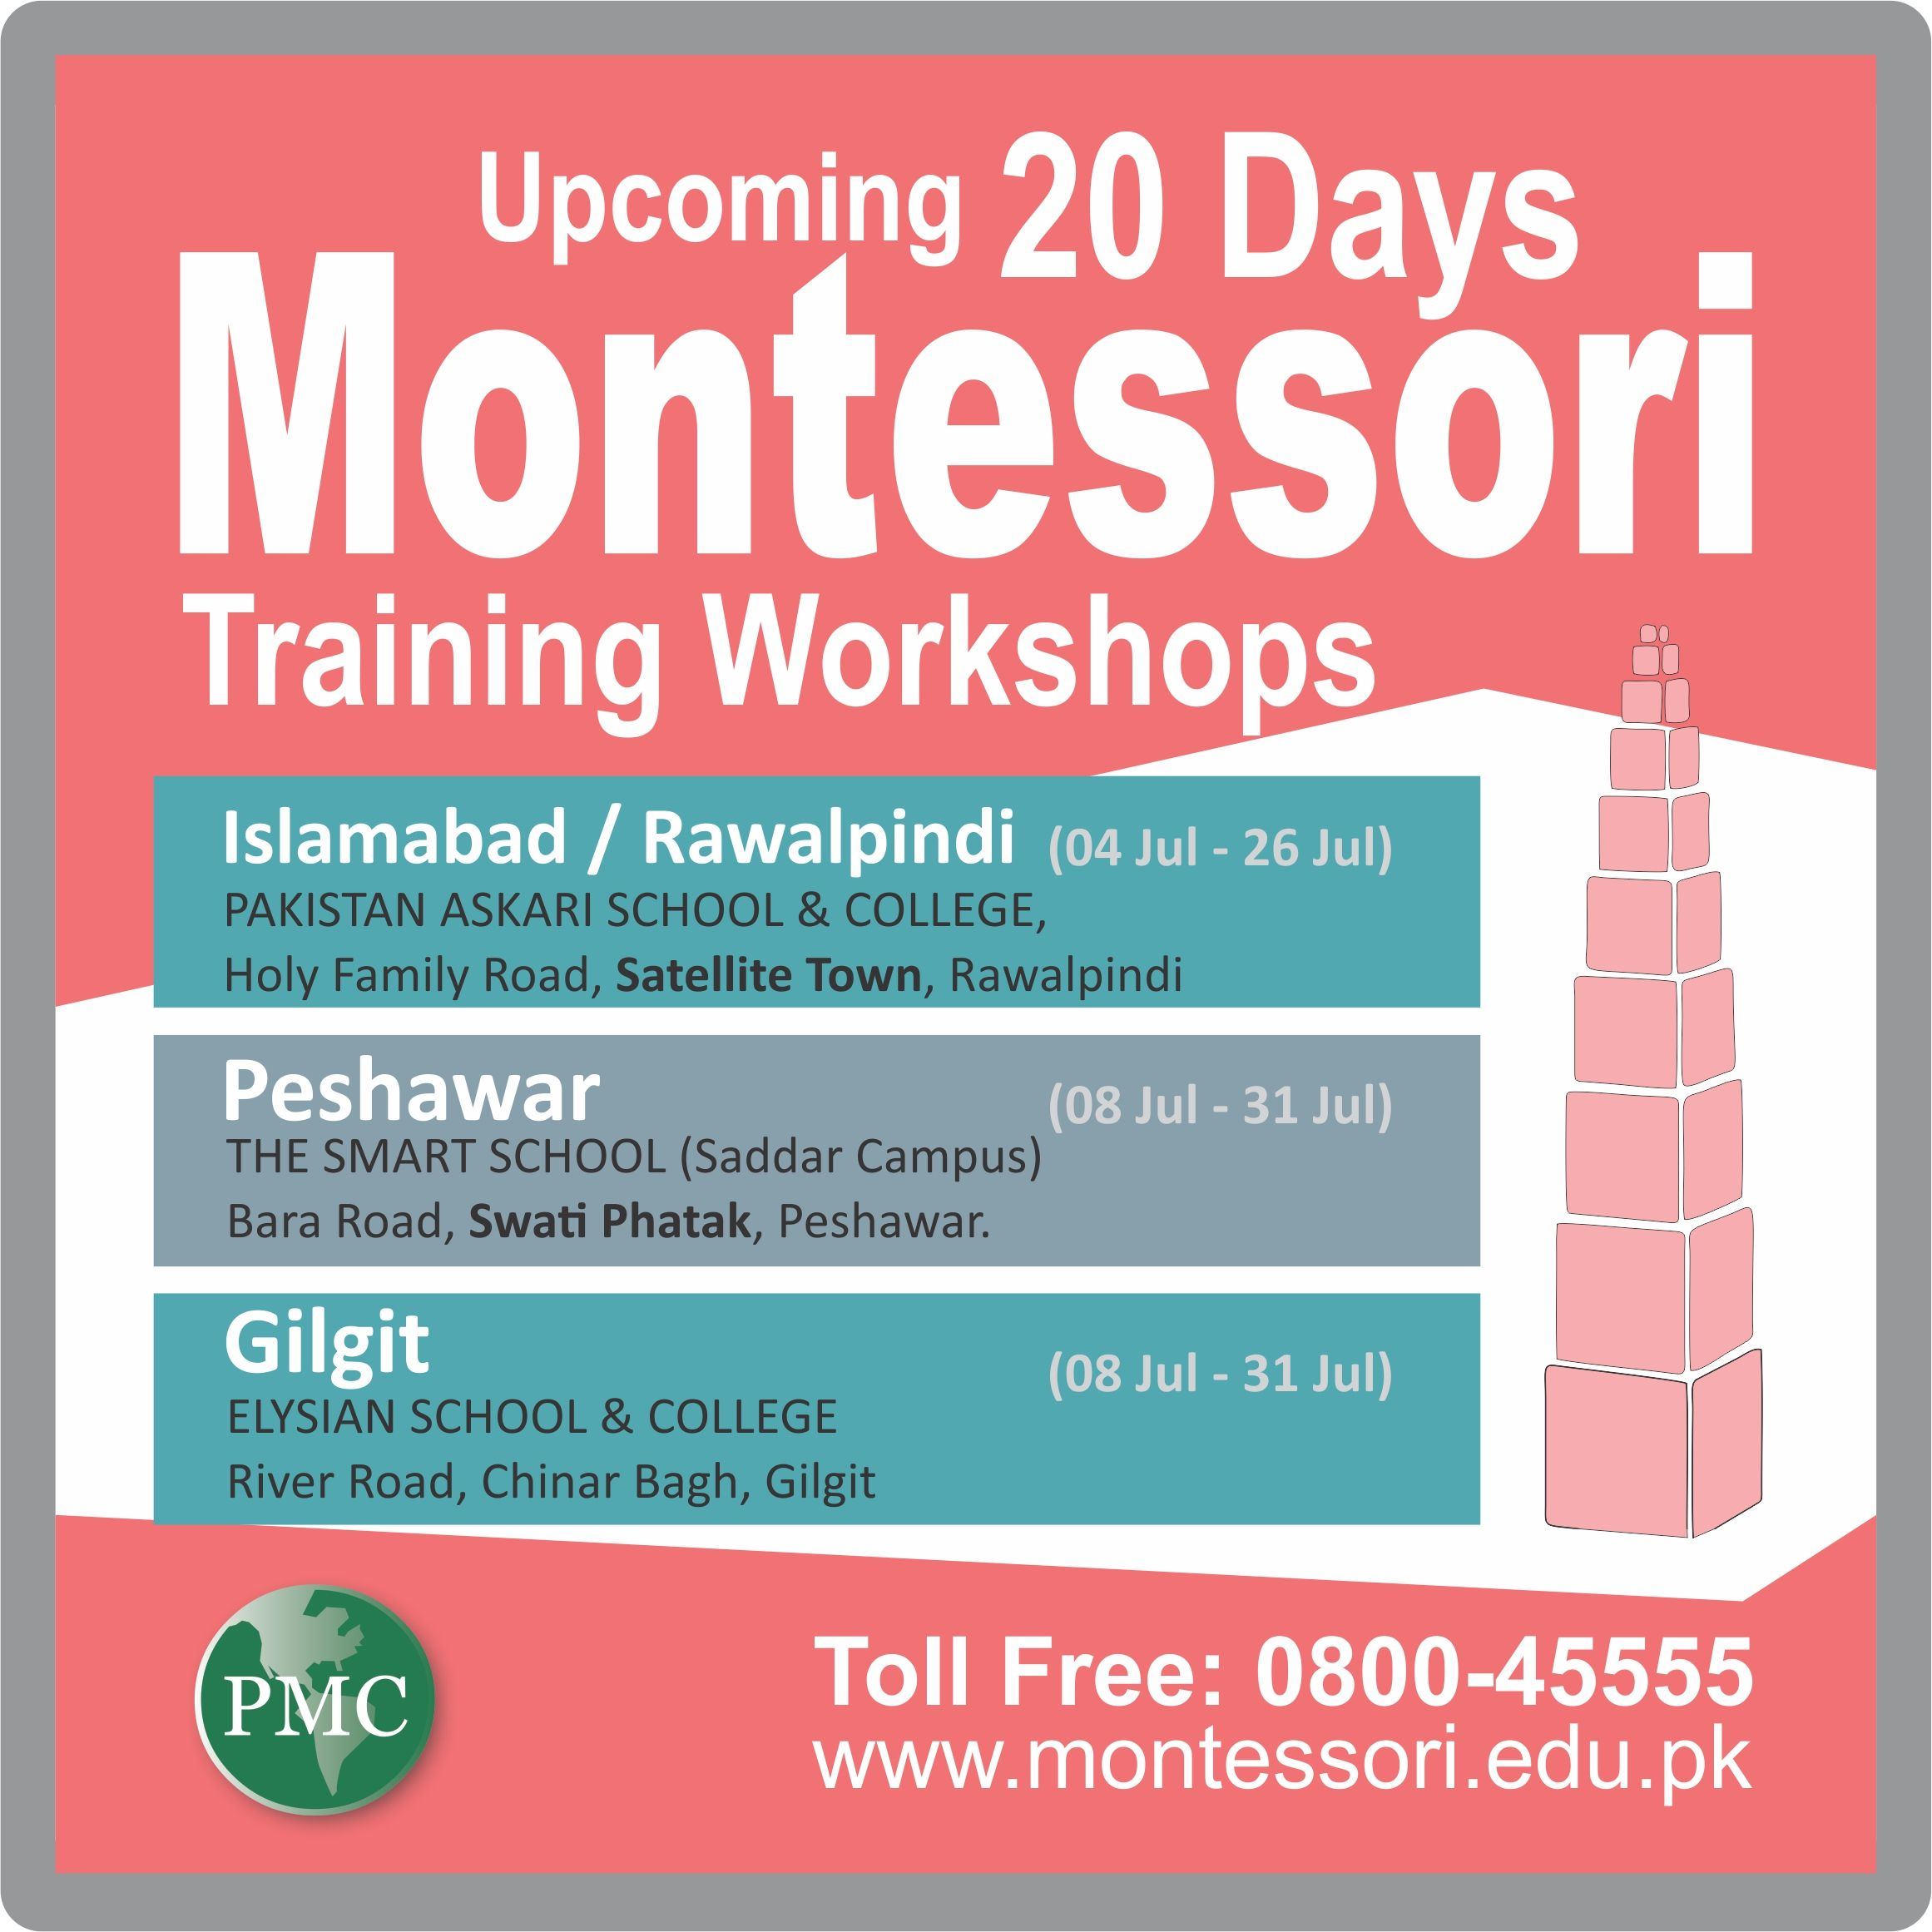 PMC's 20 DAYS MONTESSORI TEACHERS TRAINING